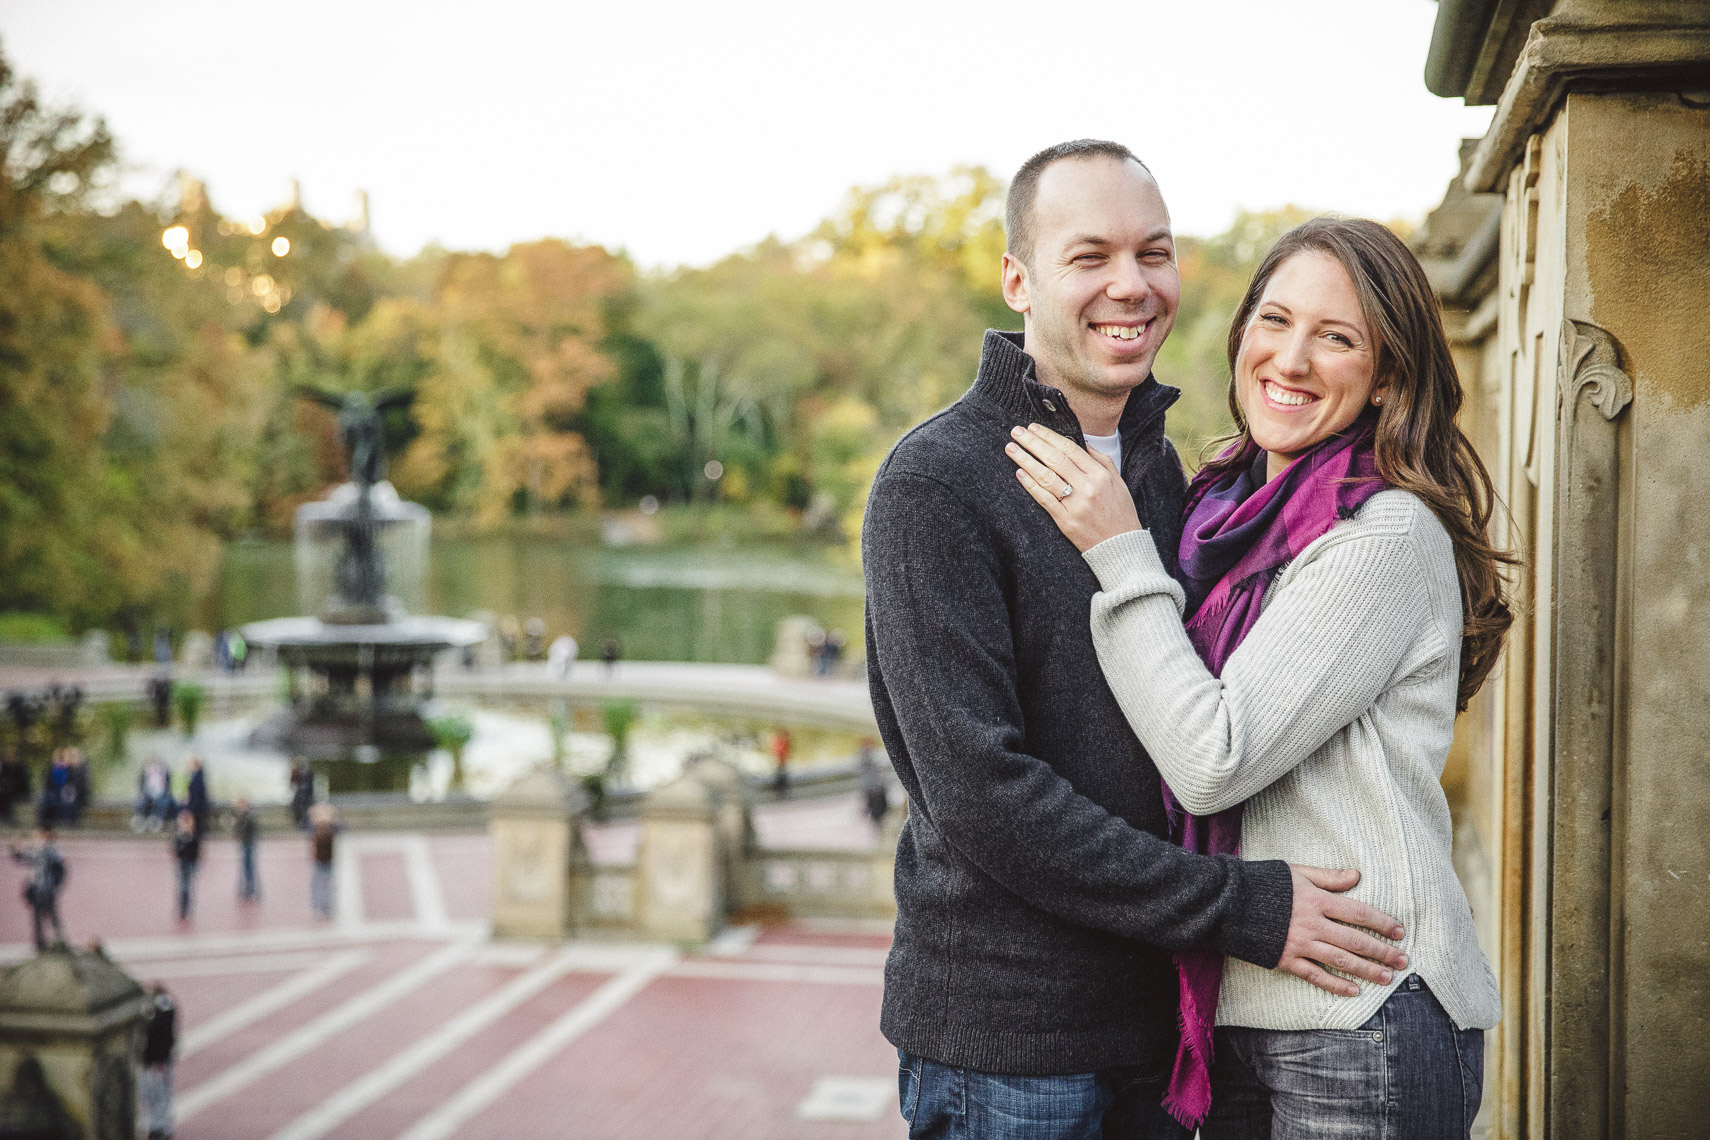 Kathi-Littwin-Photography-Engagement-Photos-4125